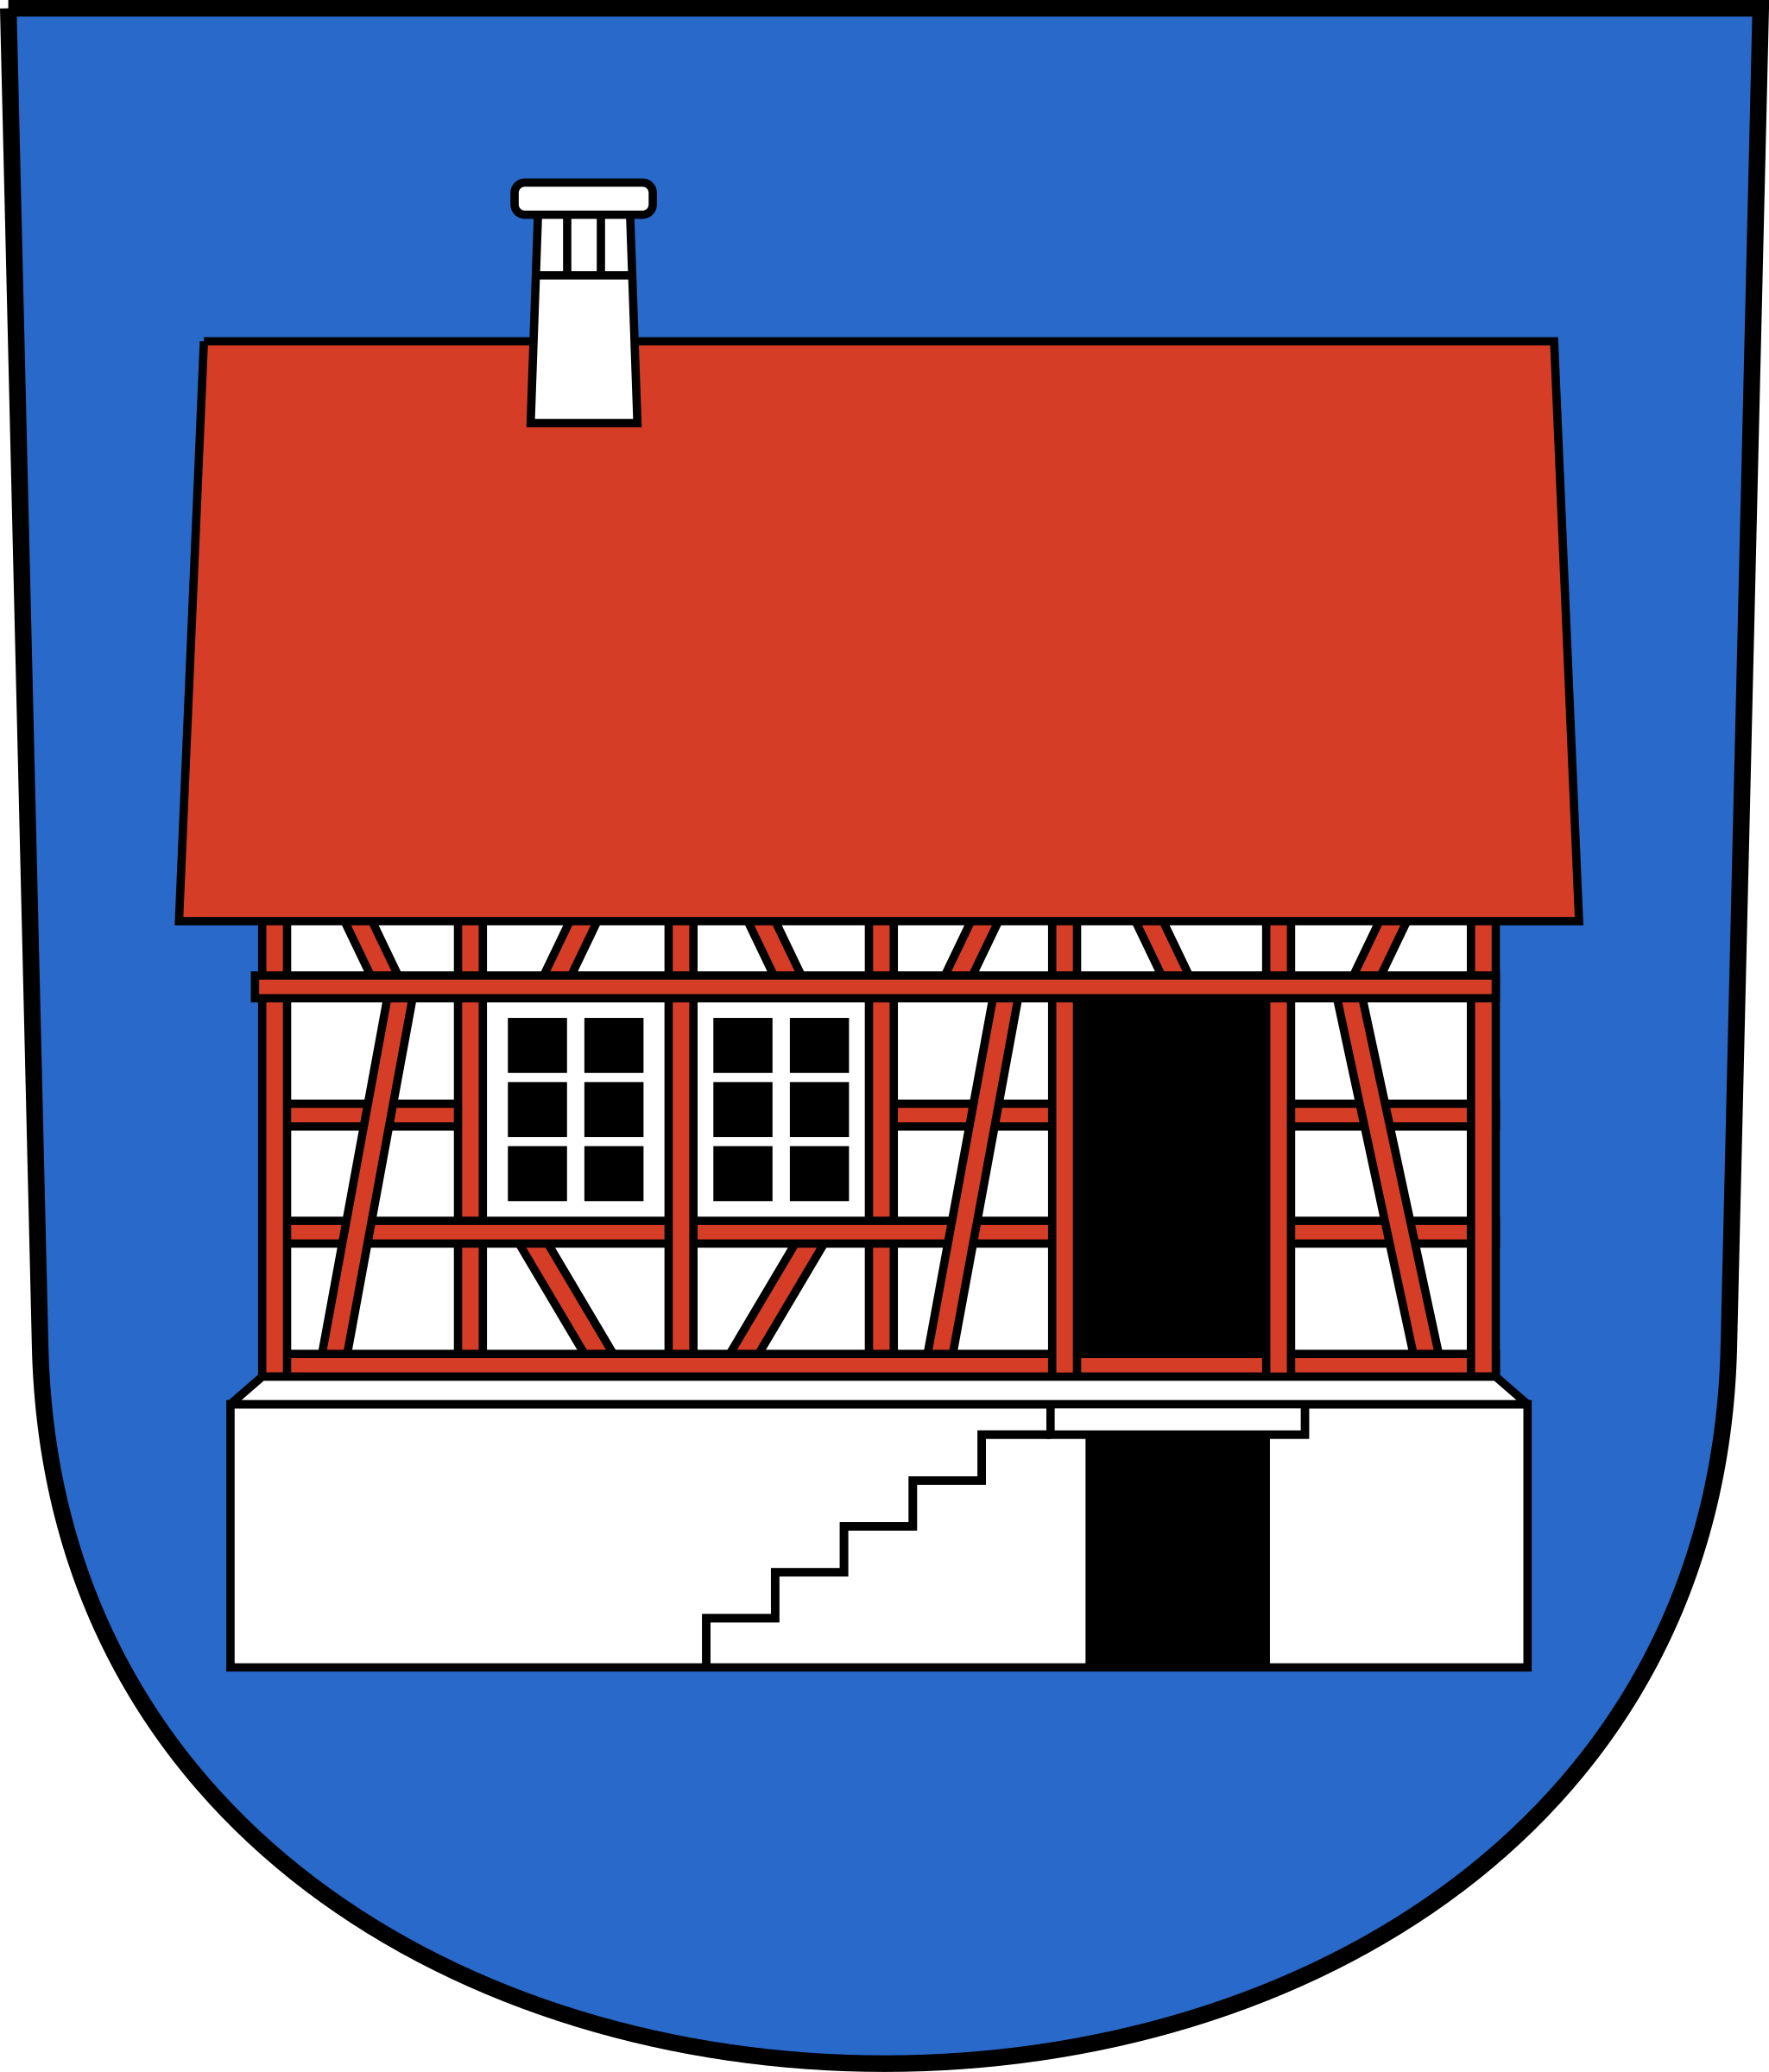 Hausen am Albis - Coat of arms 1 by wipp